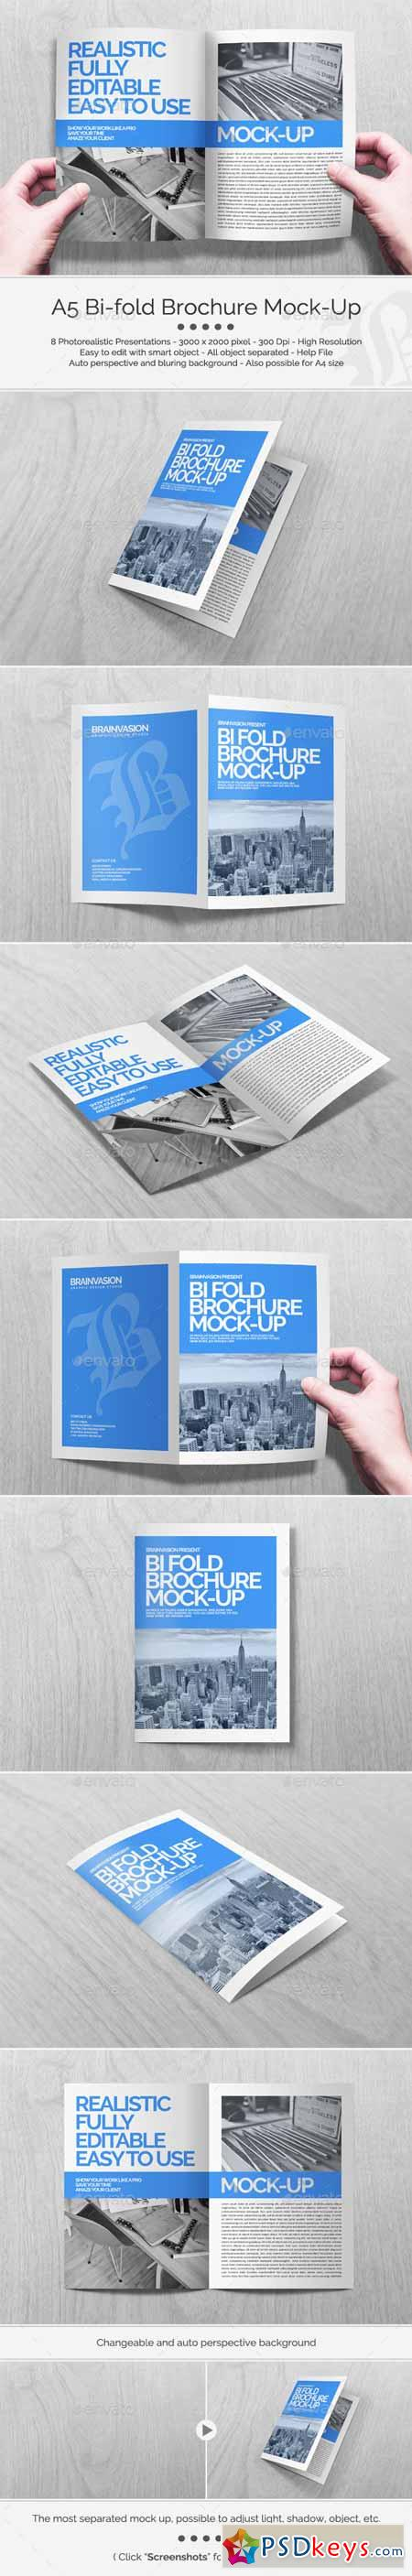 Booklet mock ups xeoe booklet mock ups reheart Image collections